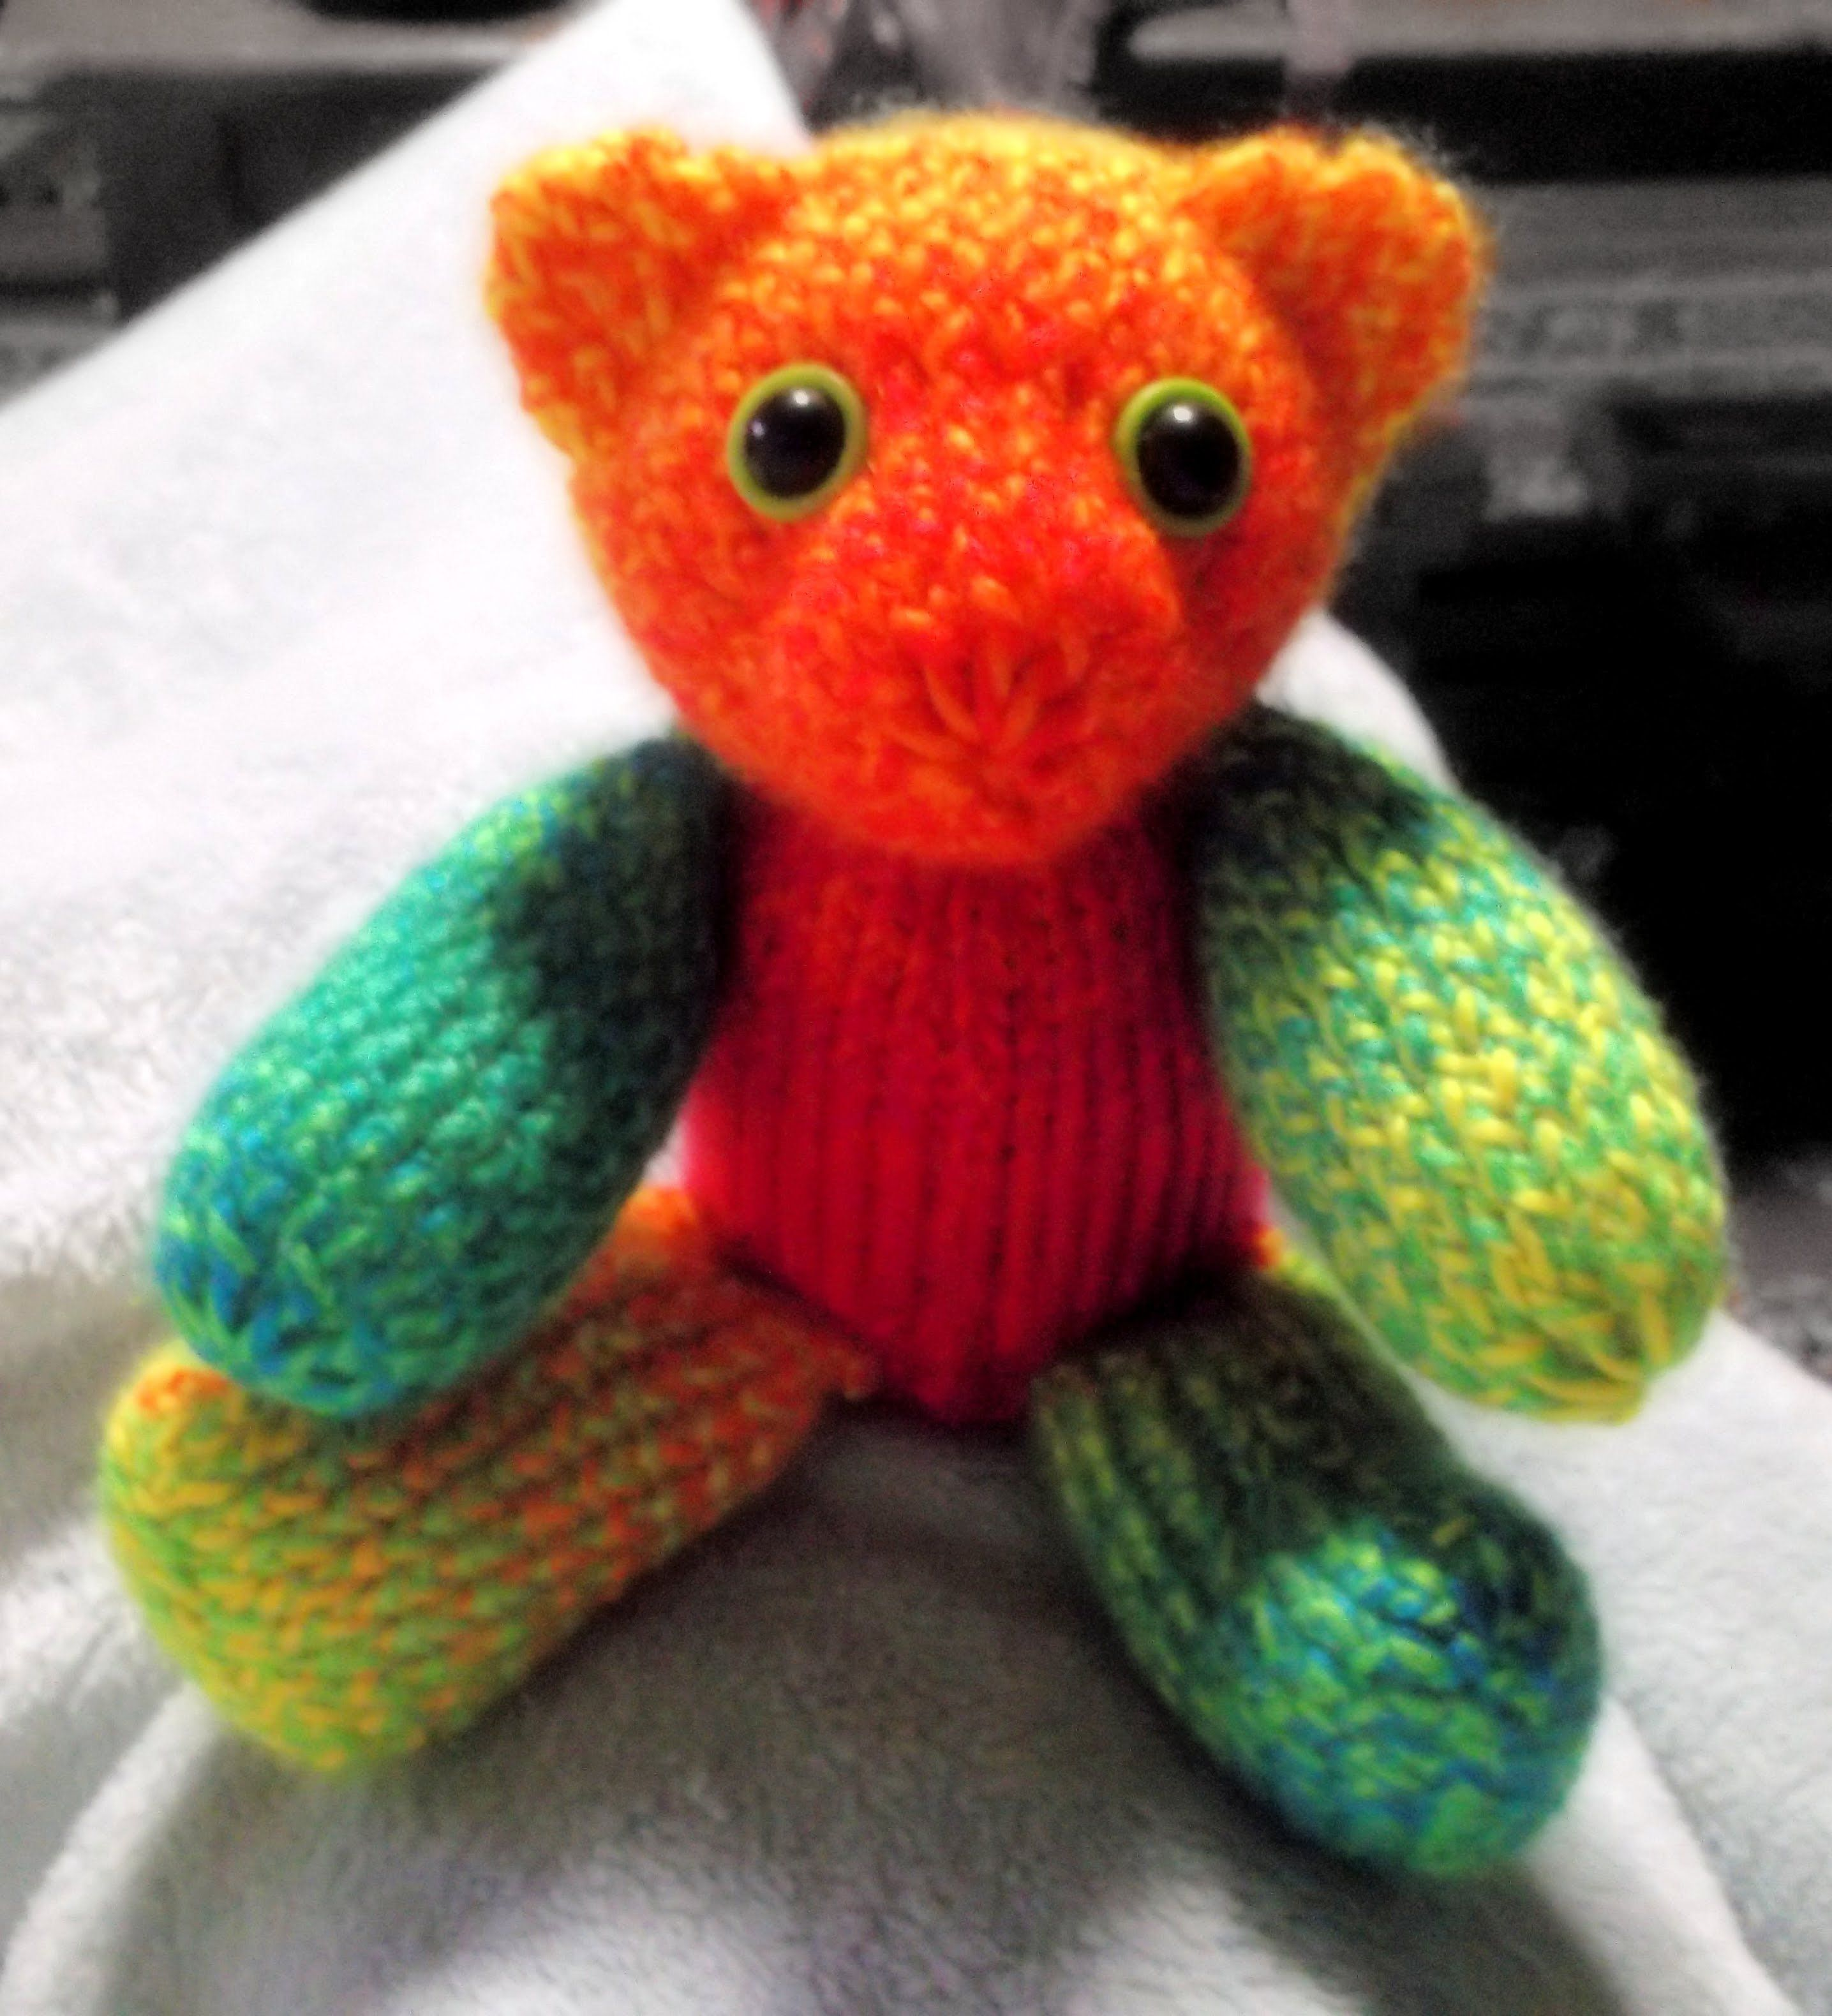 How to Loom Knit a Teddy Bear 36 pegs | Loom knitting projects ...